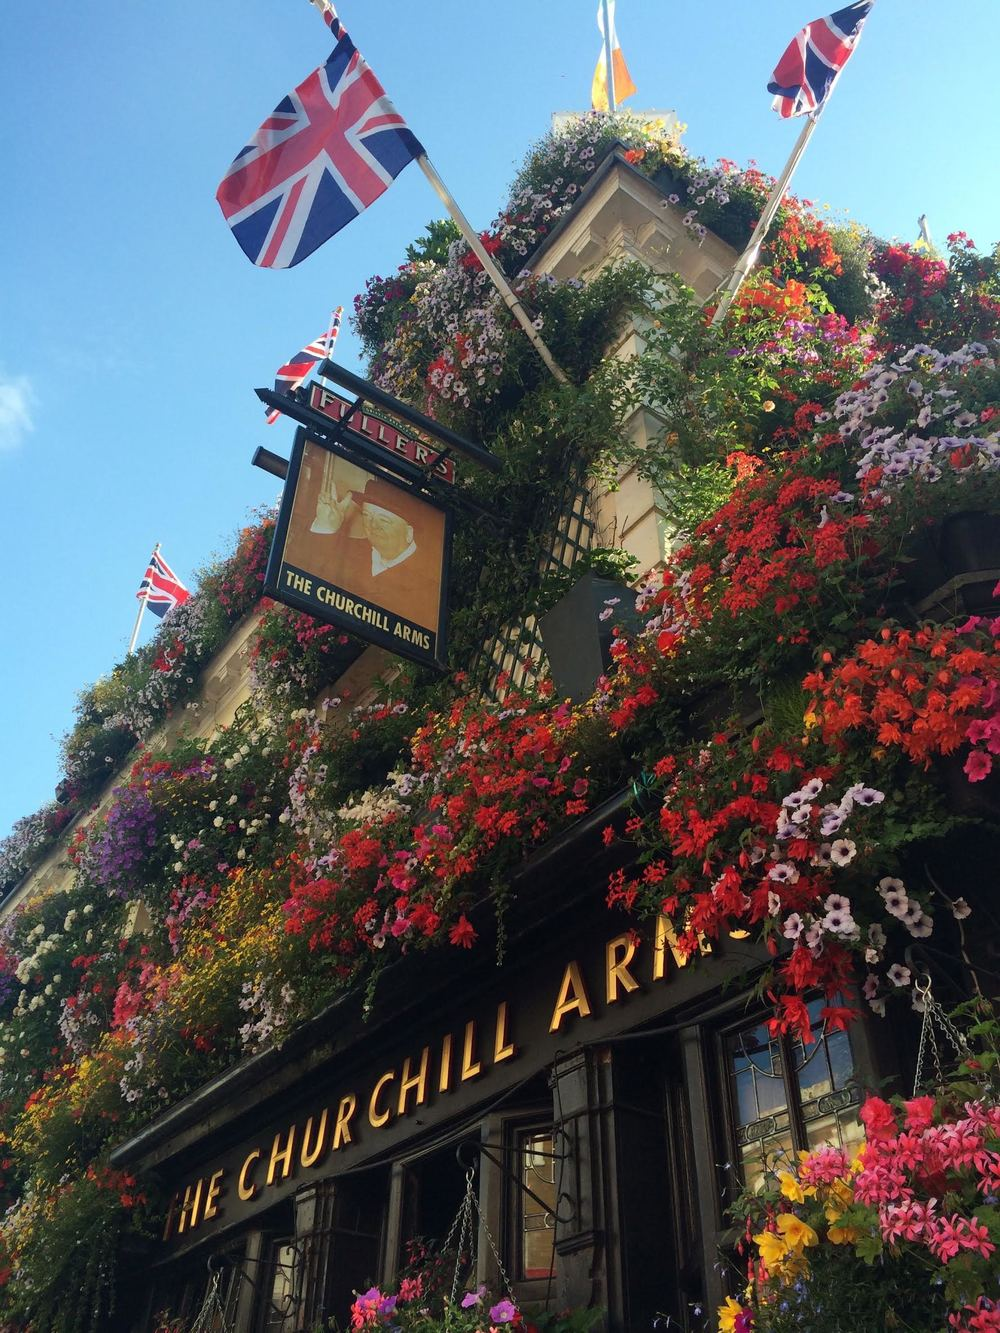 A contemporary capture - The Churchill Arms pub, situated near Notting Hill. Takes two hours to water all the plants inside & out of the place.   Photo by Celene Barrera